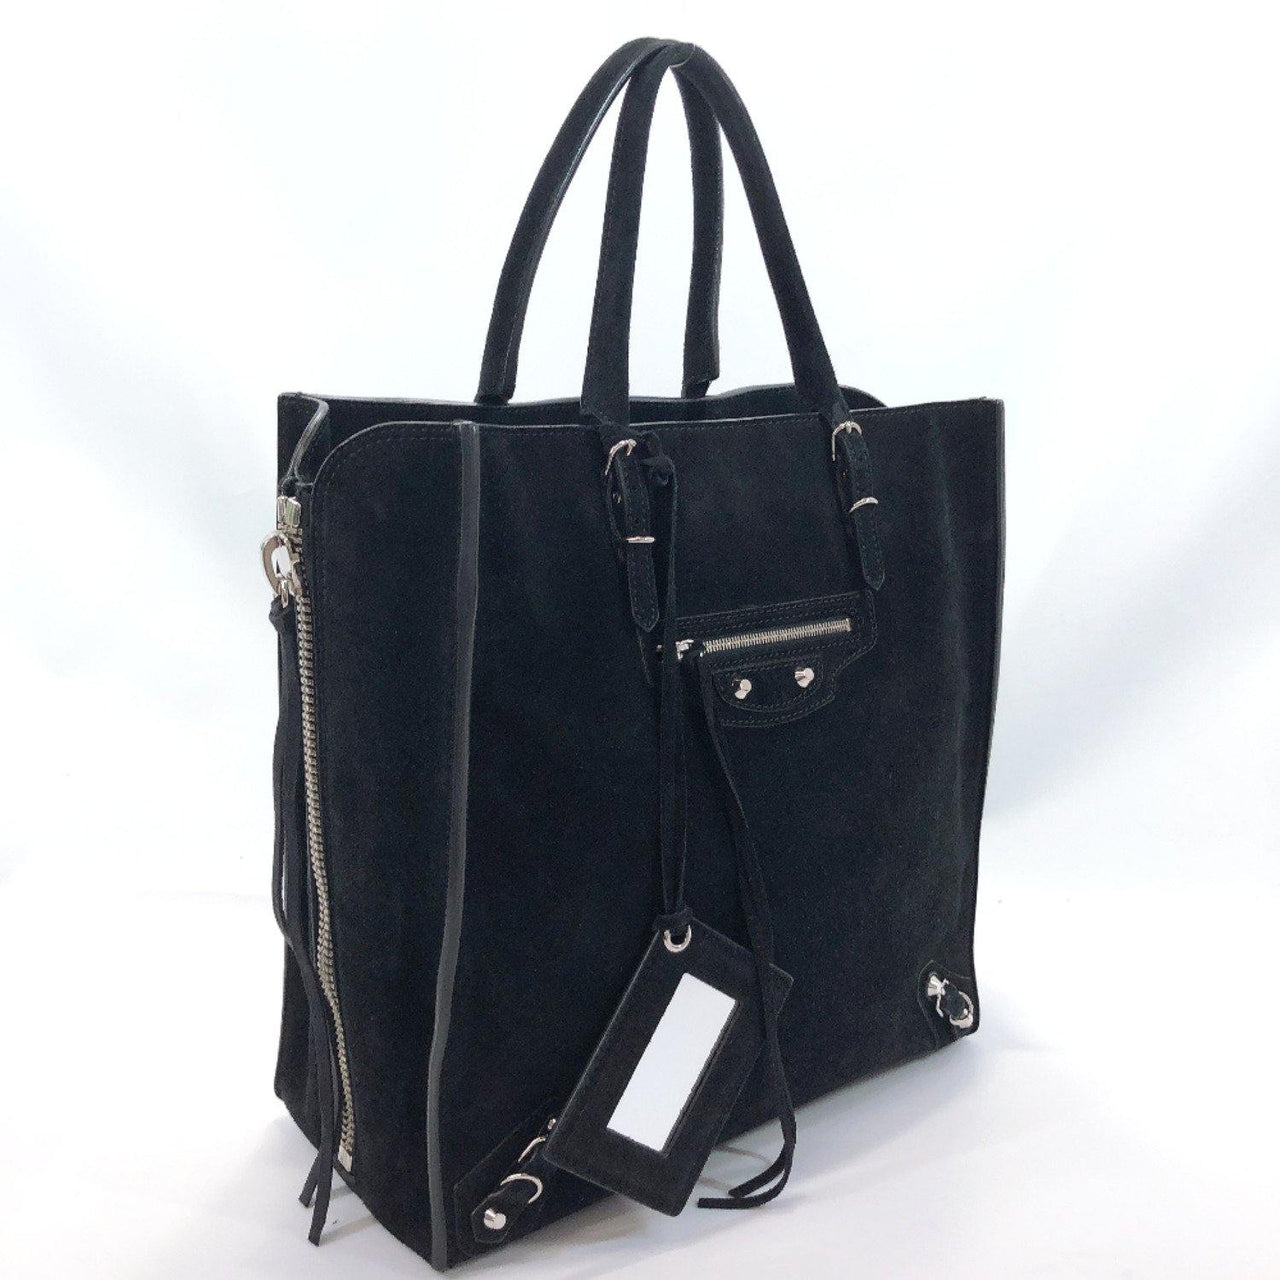 BALENCIAGA Tote Bag 357330 paper Suede black Women Used